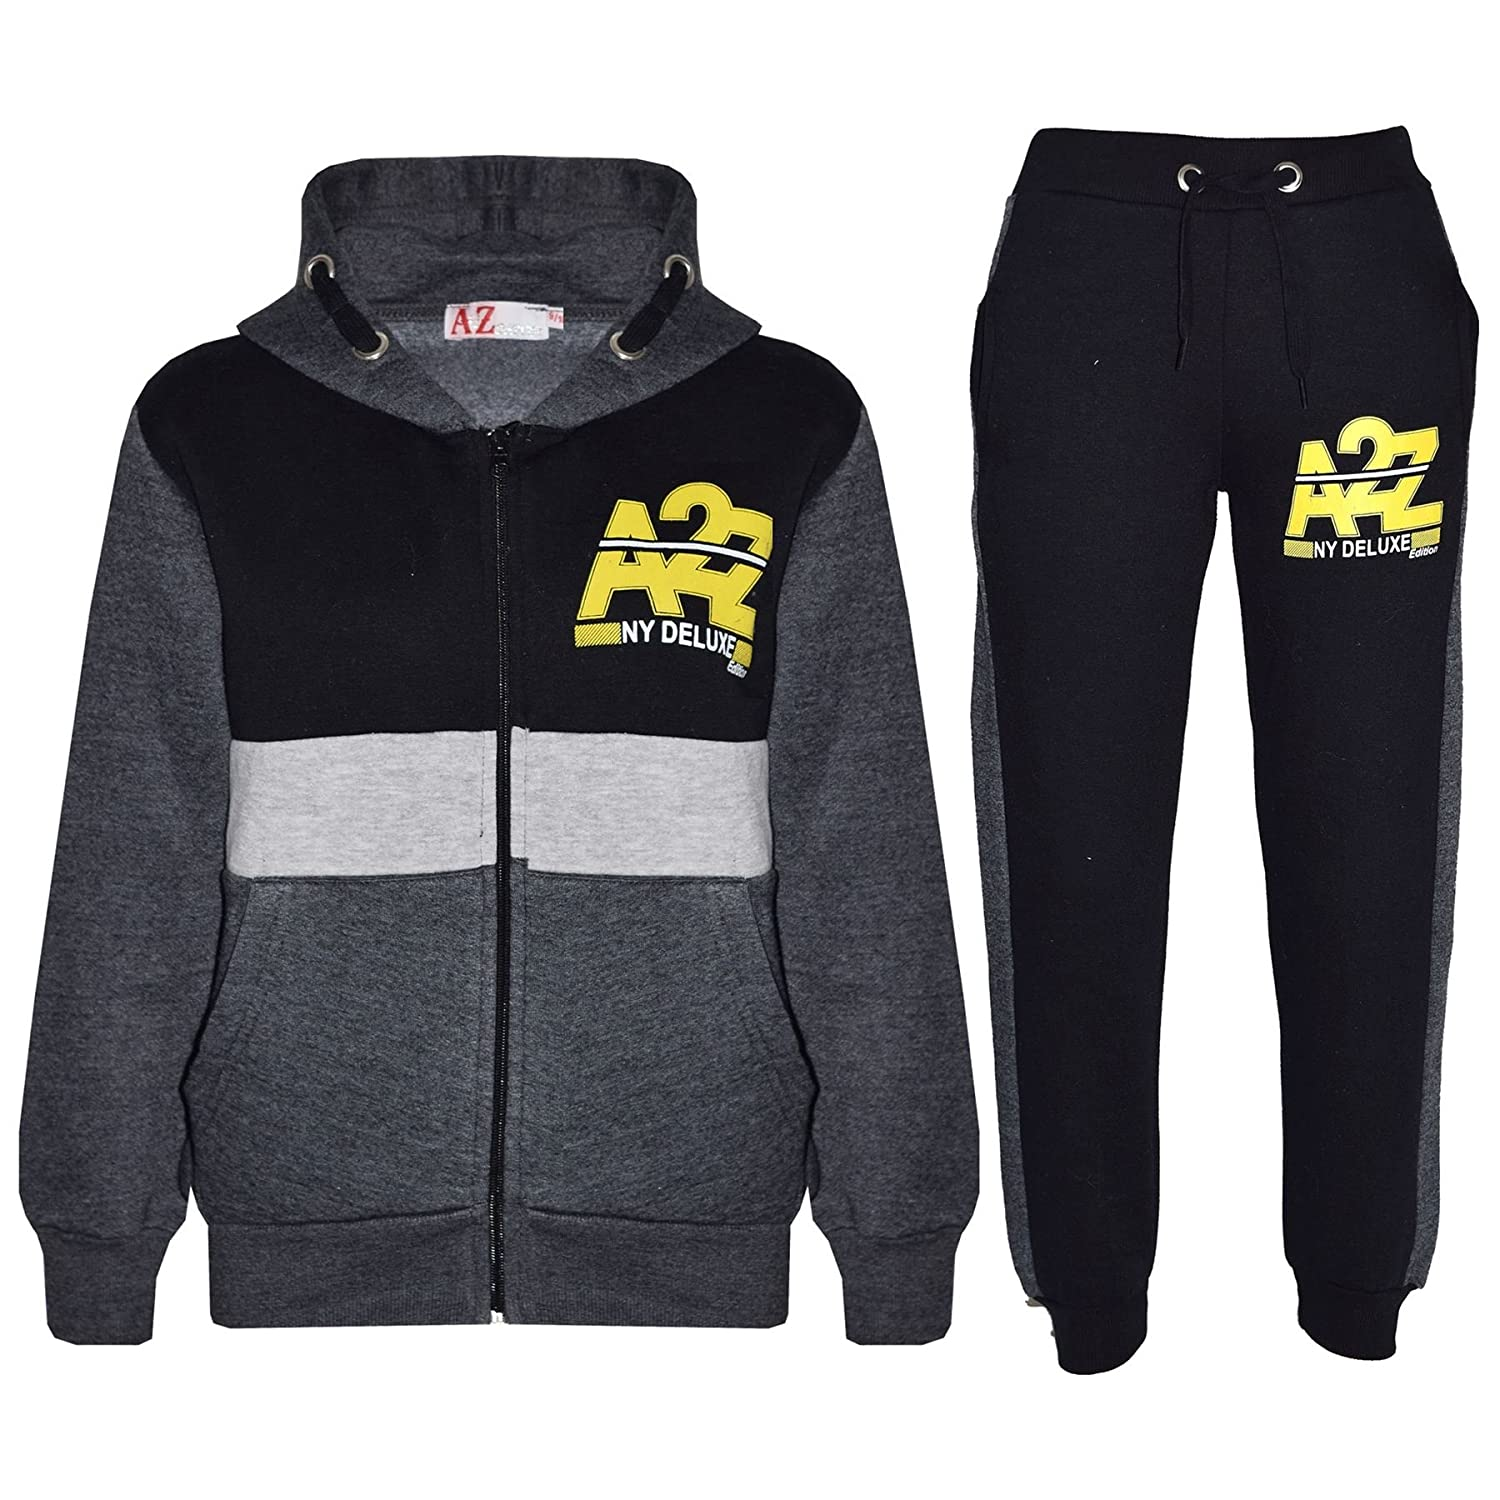 Kids Boys Designer/'s Tracksuit Zipped Top Bottoms Kids Jogging Suits 7-13 Years